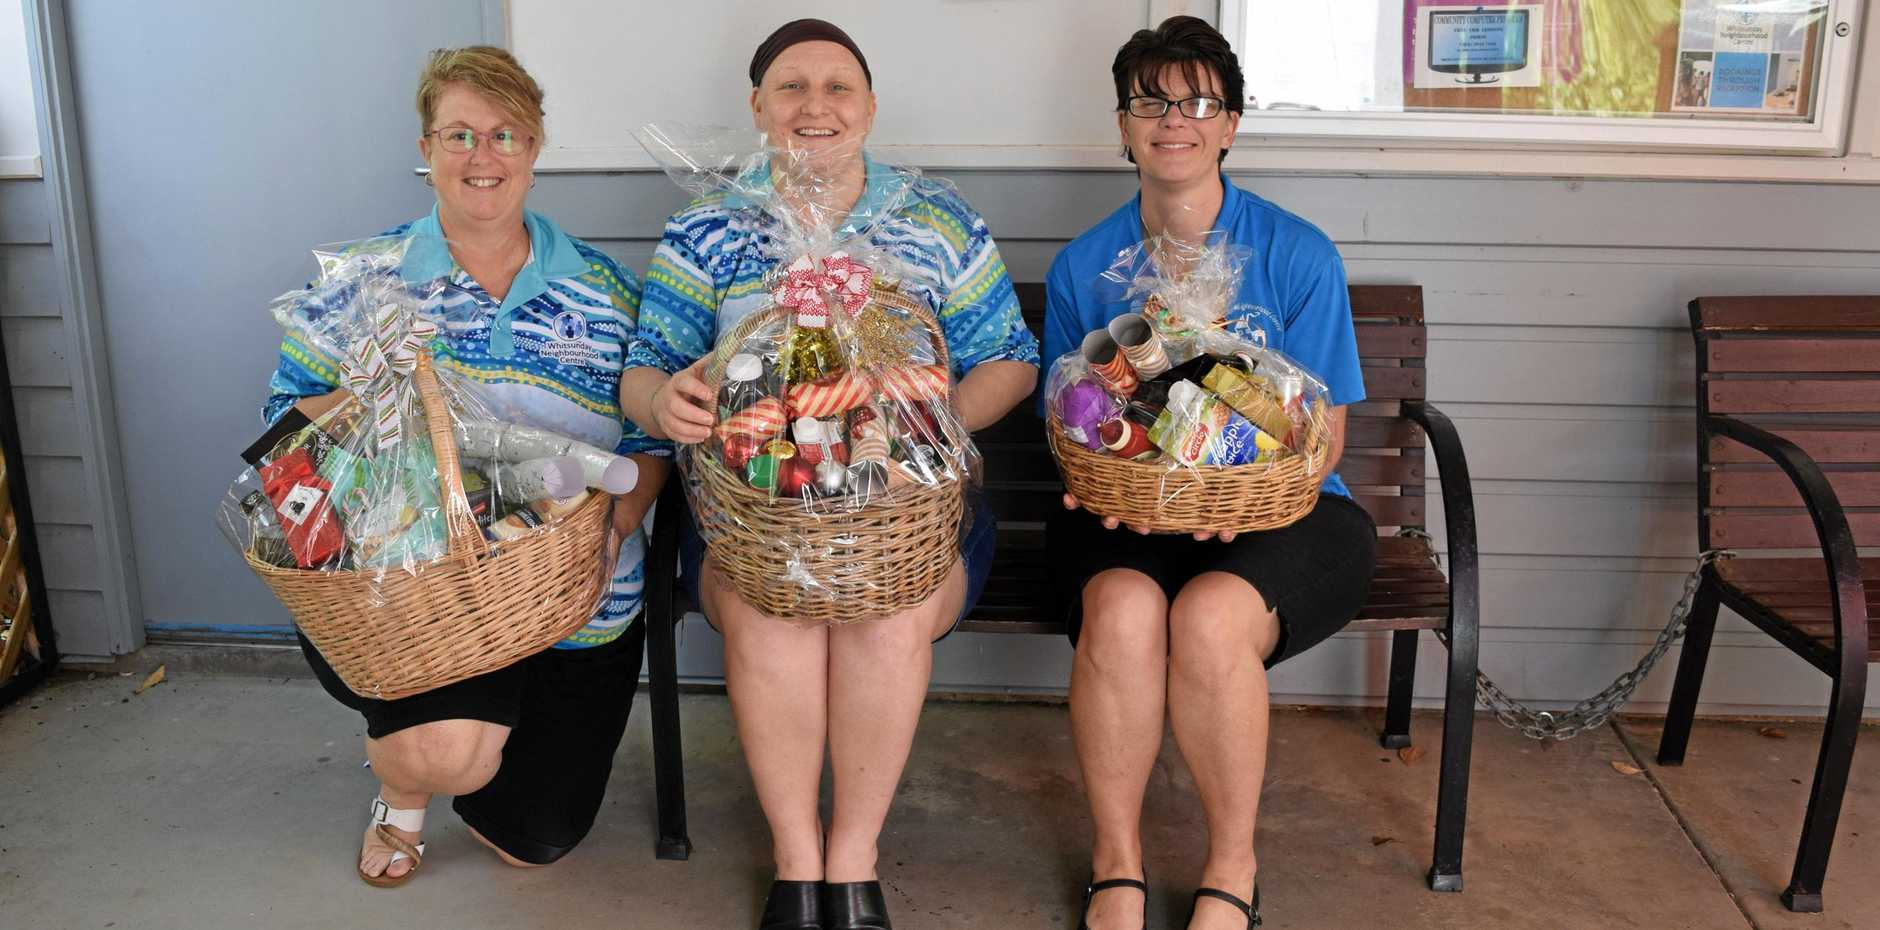 CHRISTMAS CHEER: Nikki Twohill, Rebecca Woods and Kerri Brown with Adopt-a-Family hampers.